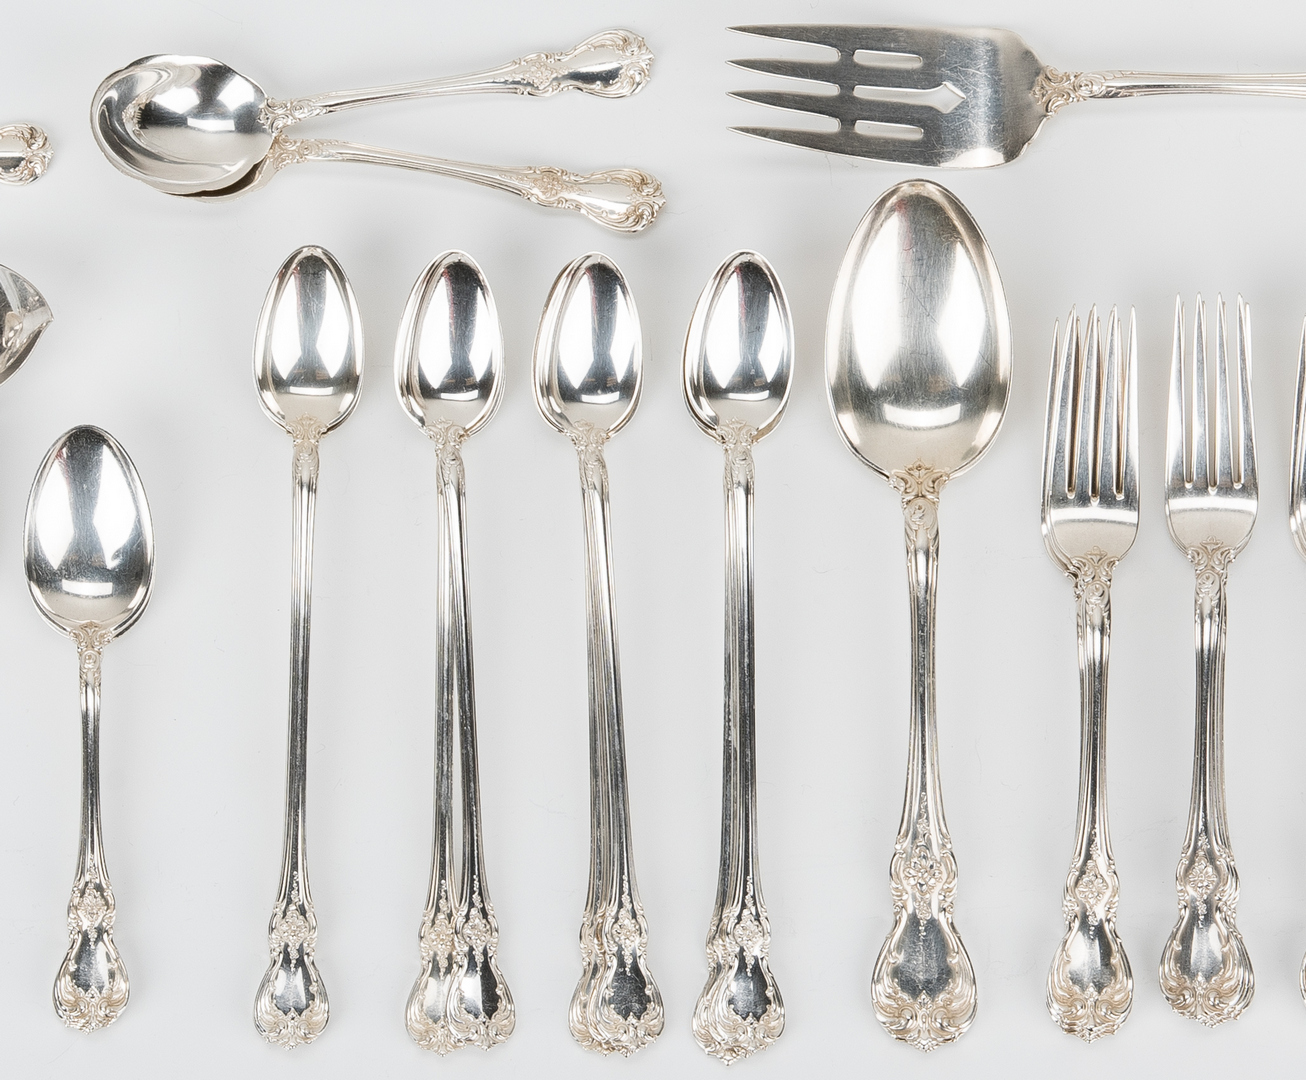 Lot 241: 100 Pcs. Towle Old Master Sterling Silver Flatware